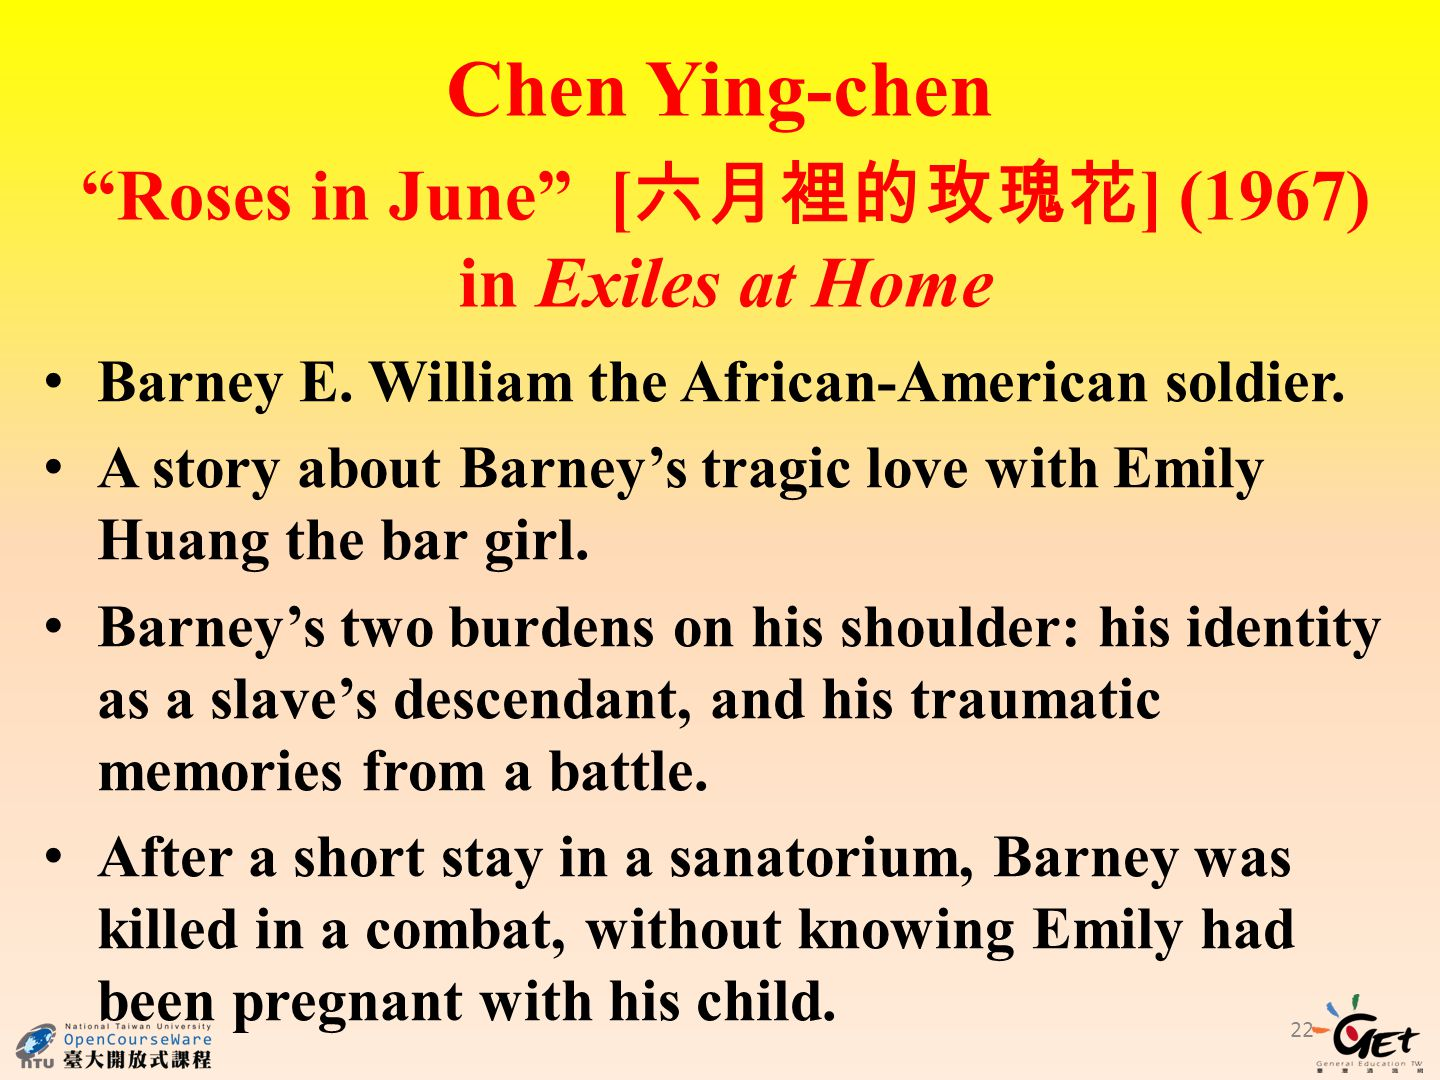 Chen Ying-chen Barney E. William the African-American soldier.